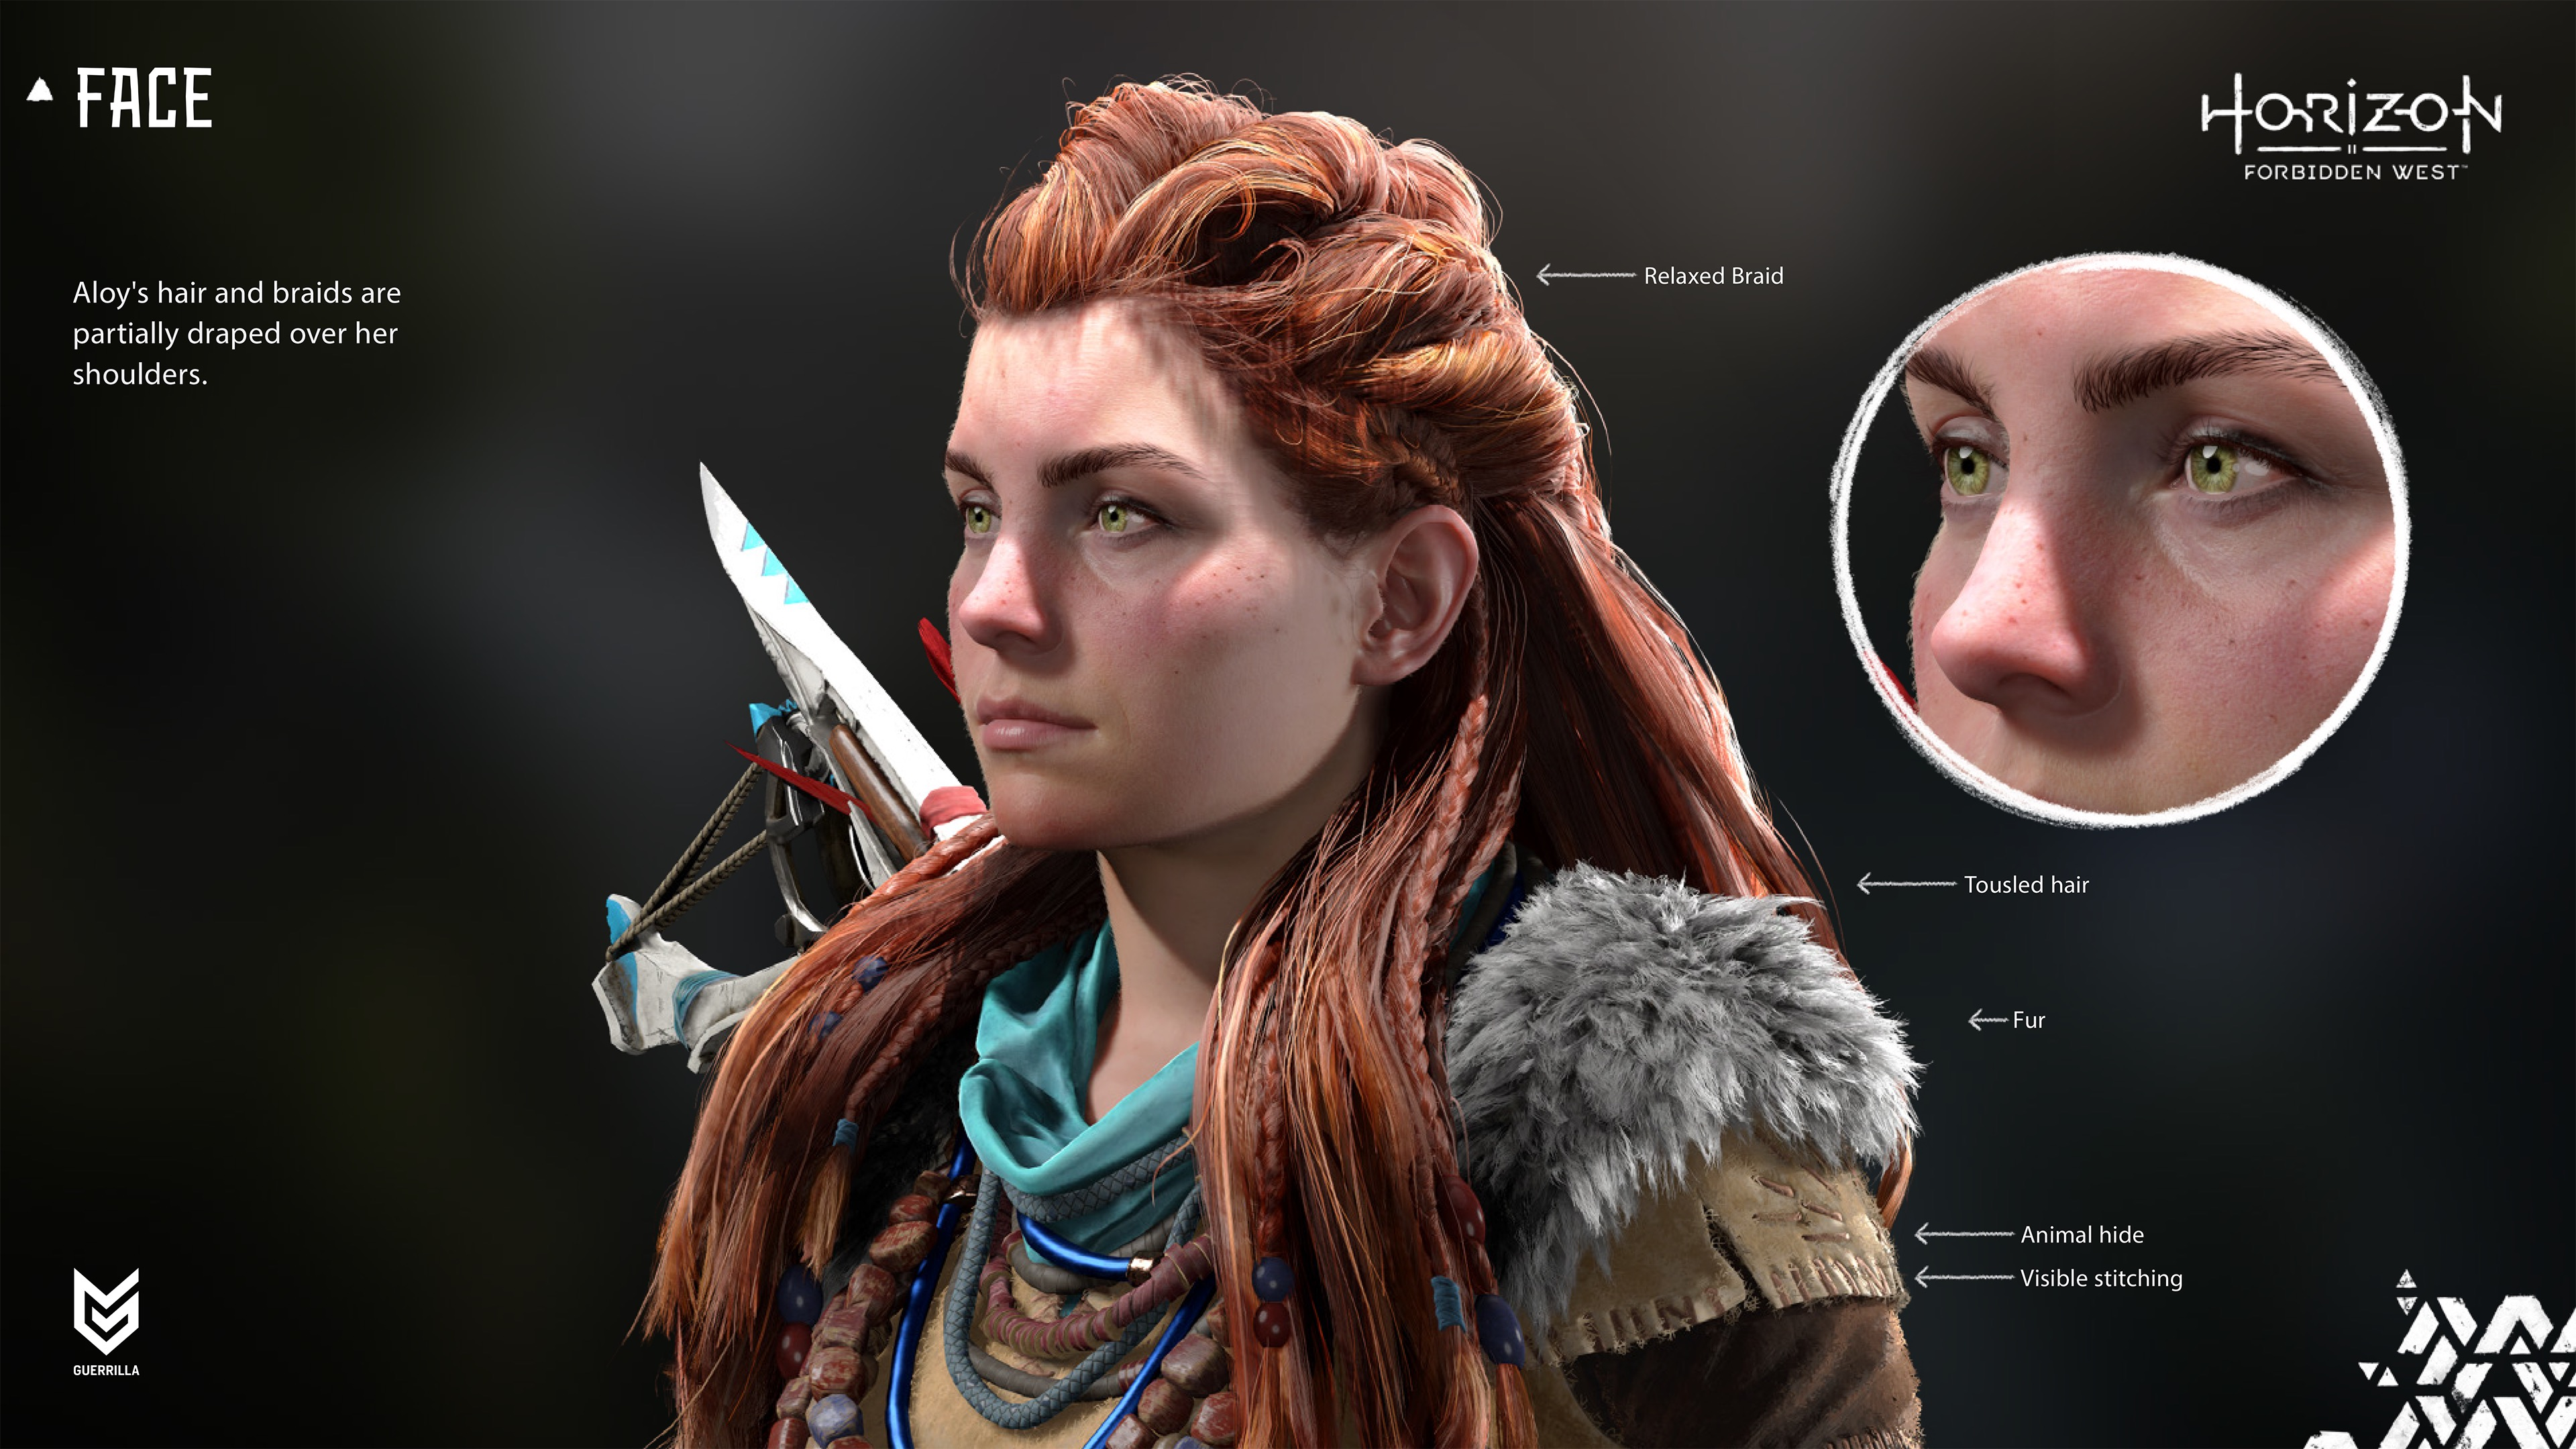 Horizon Forbidden West graphical showcase featuring protagonist Aloy